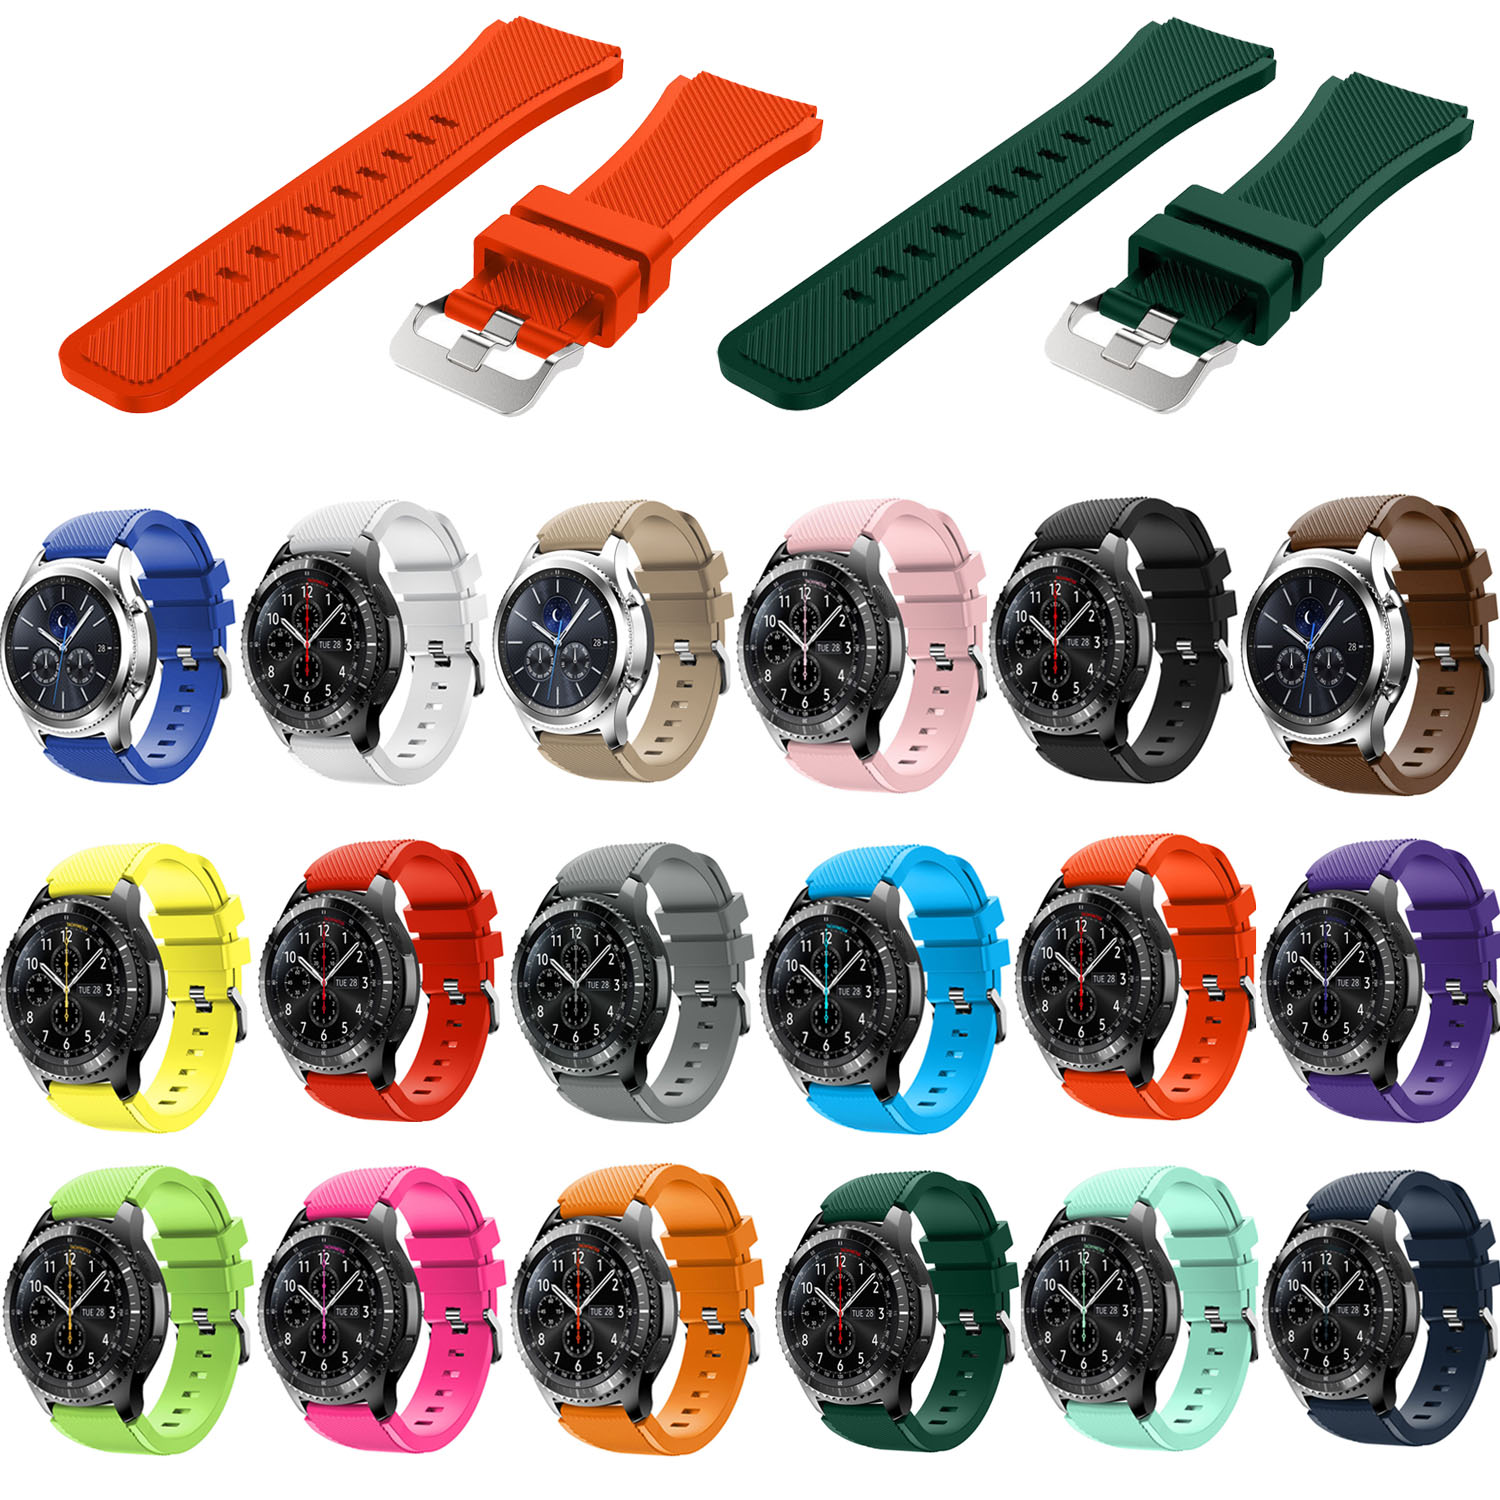 Hot Sale 22mm Sports Silicone Strap for Samsung Gear S3 Frontier Band for Gear S3 Classic Rubber Watchband Replacement Wristband silicone sport watchband for gear s3 classic frontier 22mm strap for samsung galaxy watch 46mm band replacement strap bracelet